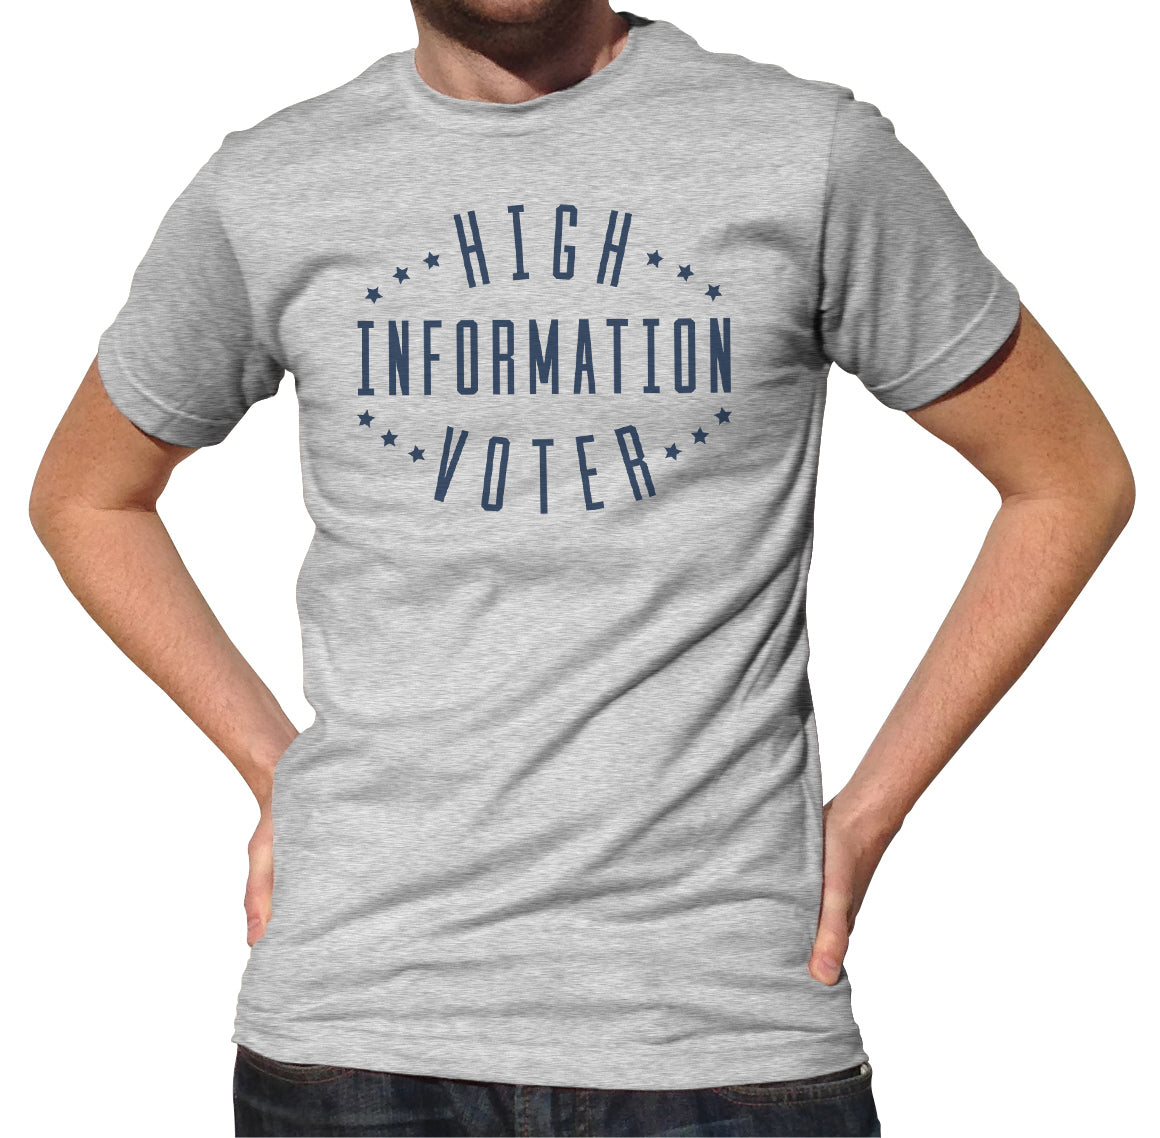 Men's High Information Voter T-Shirt - Anti Trump Shirt - Liberal Shirt Political Shirt - Democrat Shirt